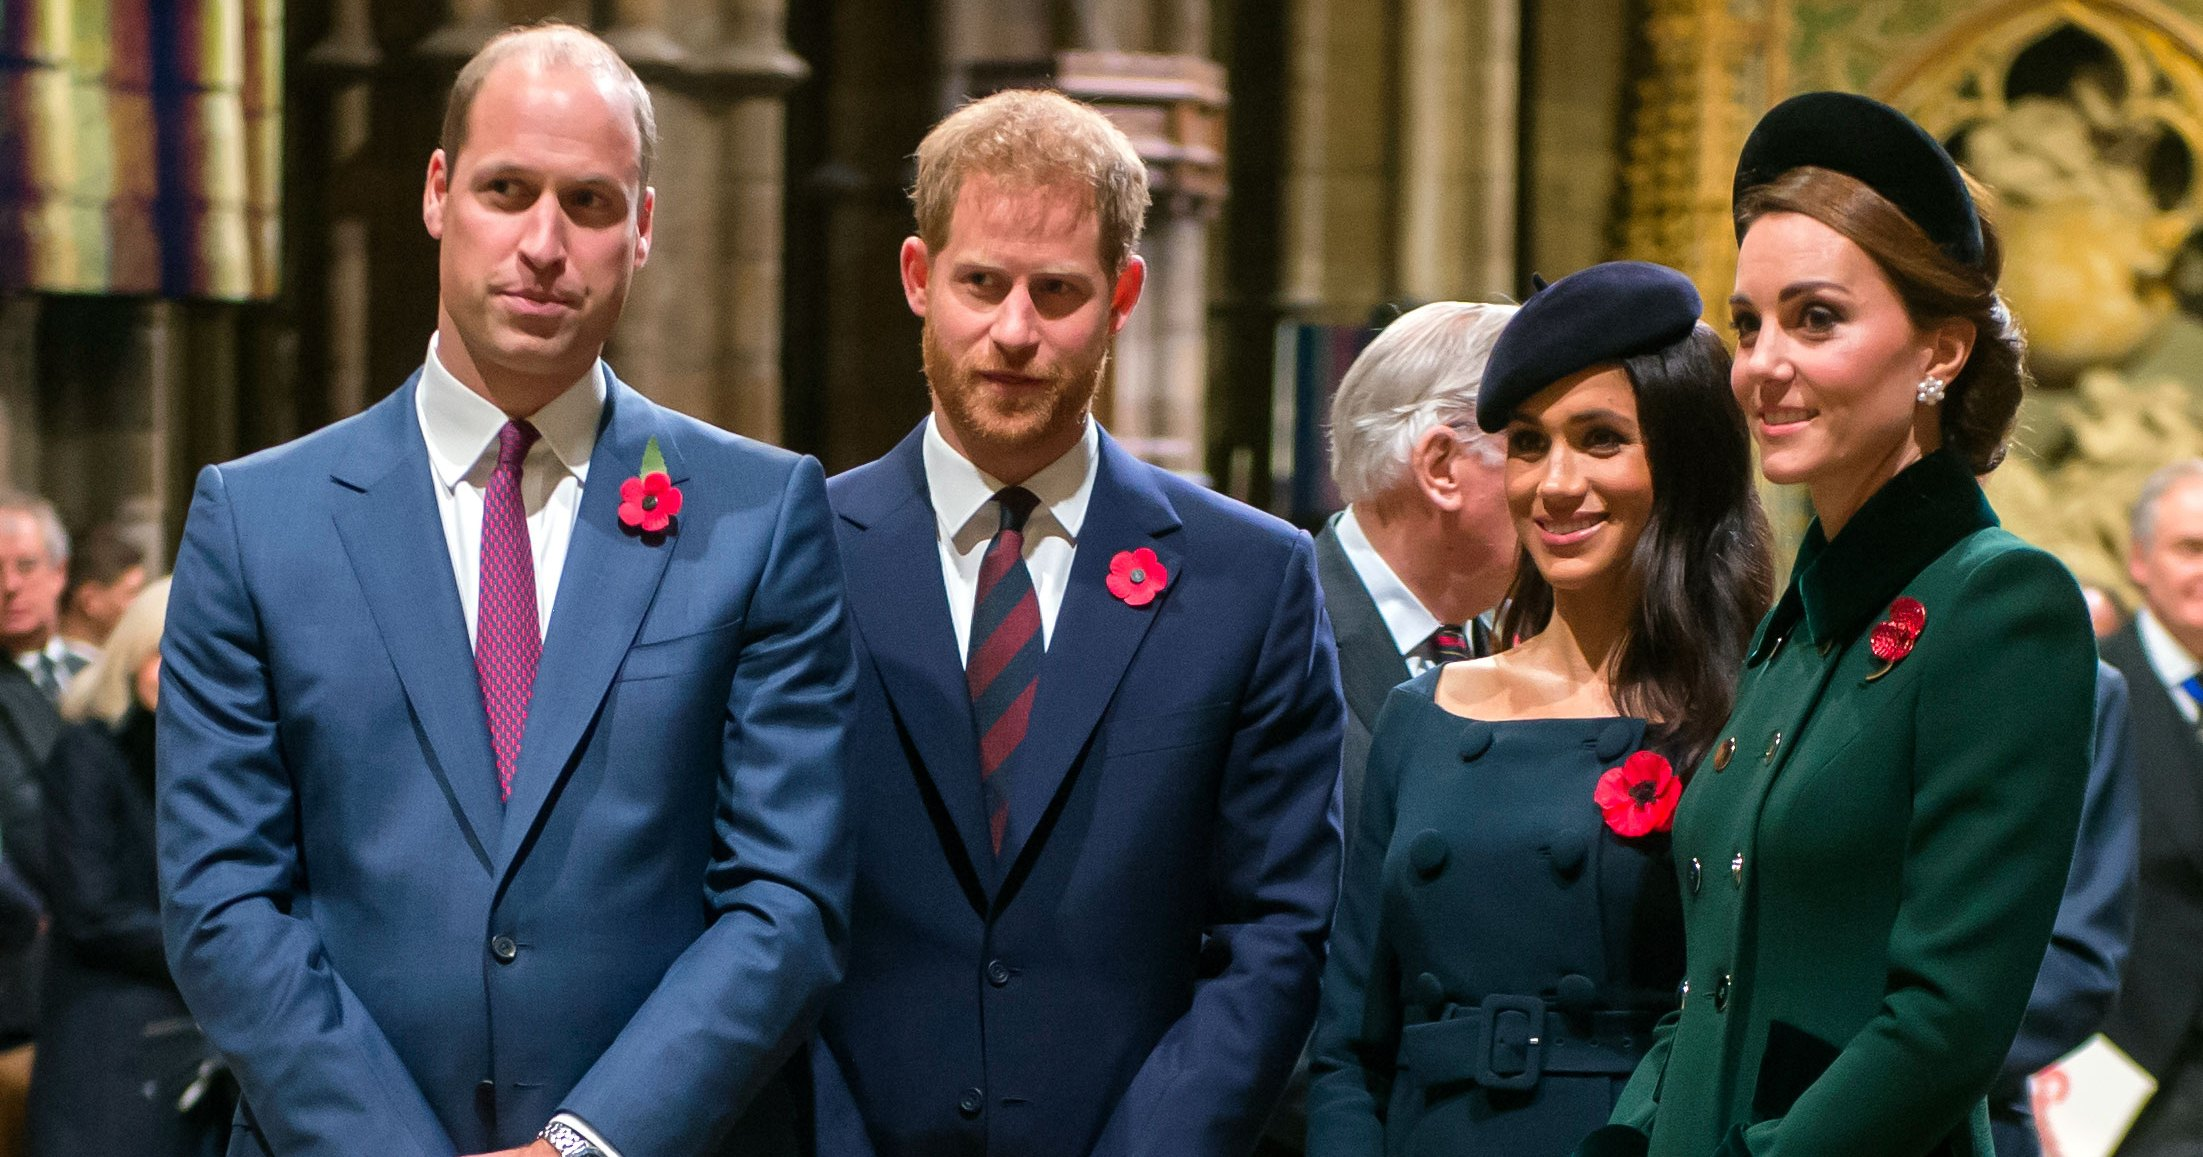 Prince William and Prince Harry to Formally Split Their Royal Household: Report